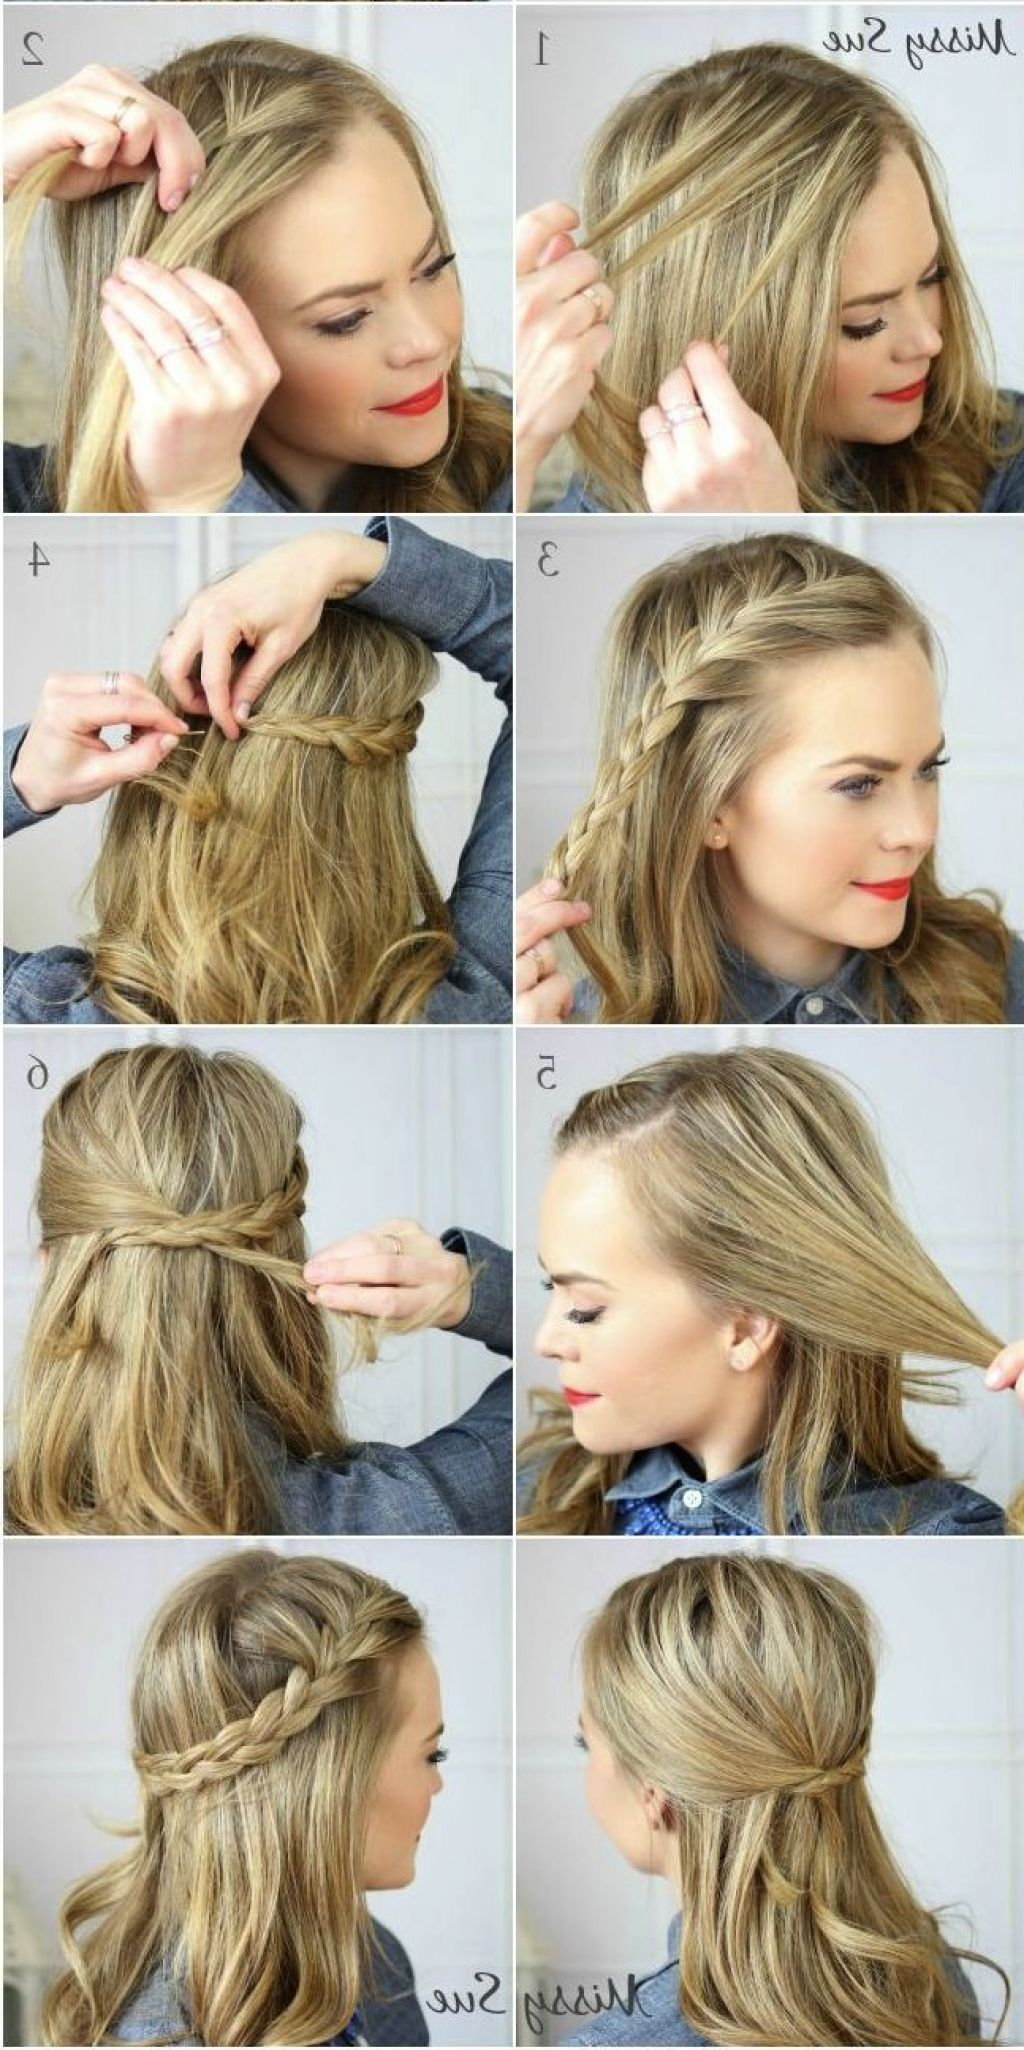 203 Casual Hairstyles For Long Hair Hairstyles 2019 Medium Hair Styles Medium Length Hair Styles French Braid Hairstyles